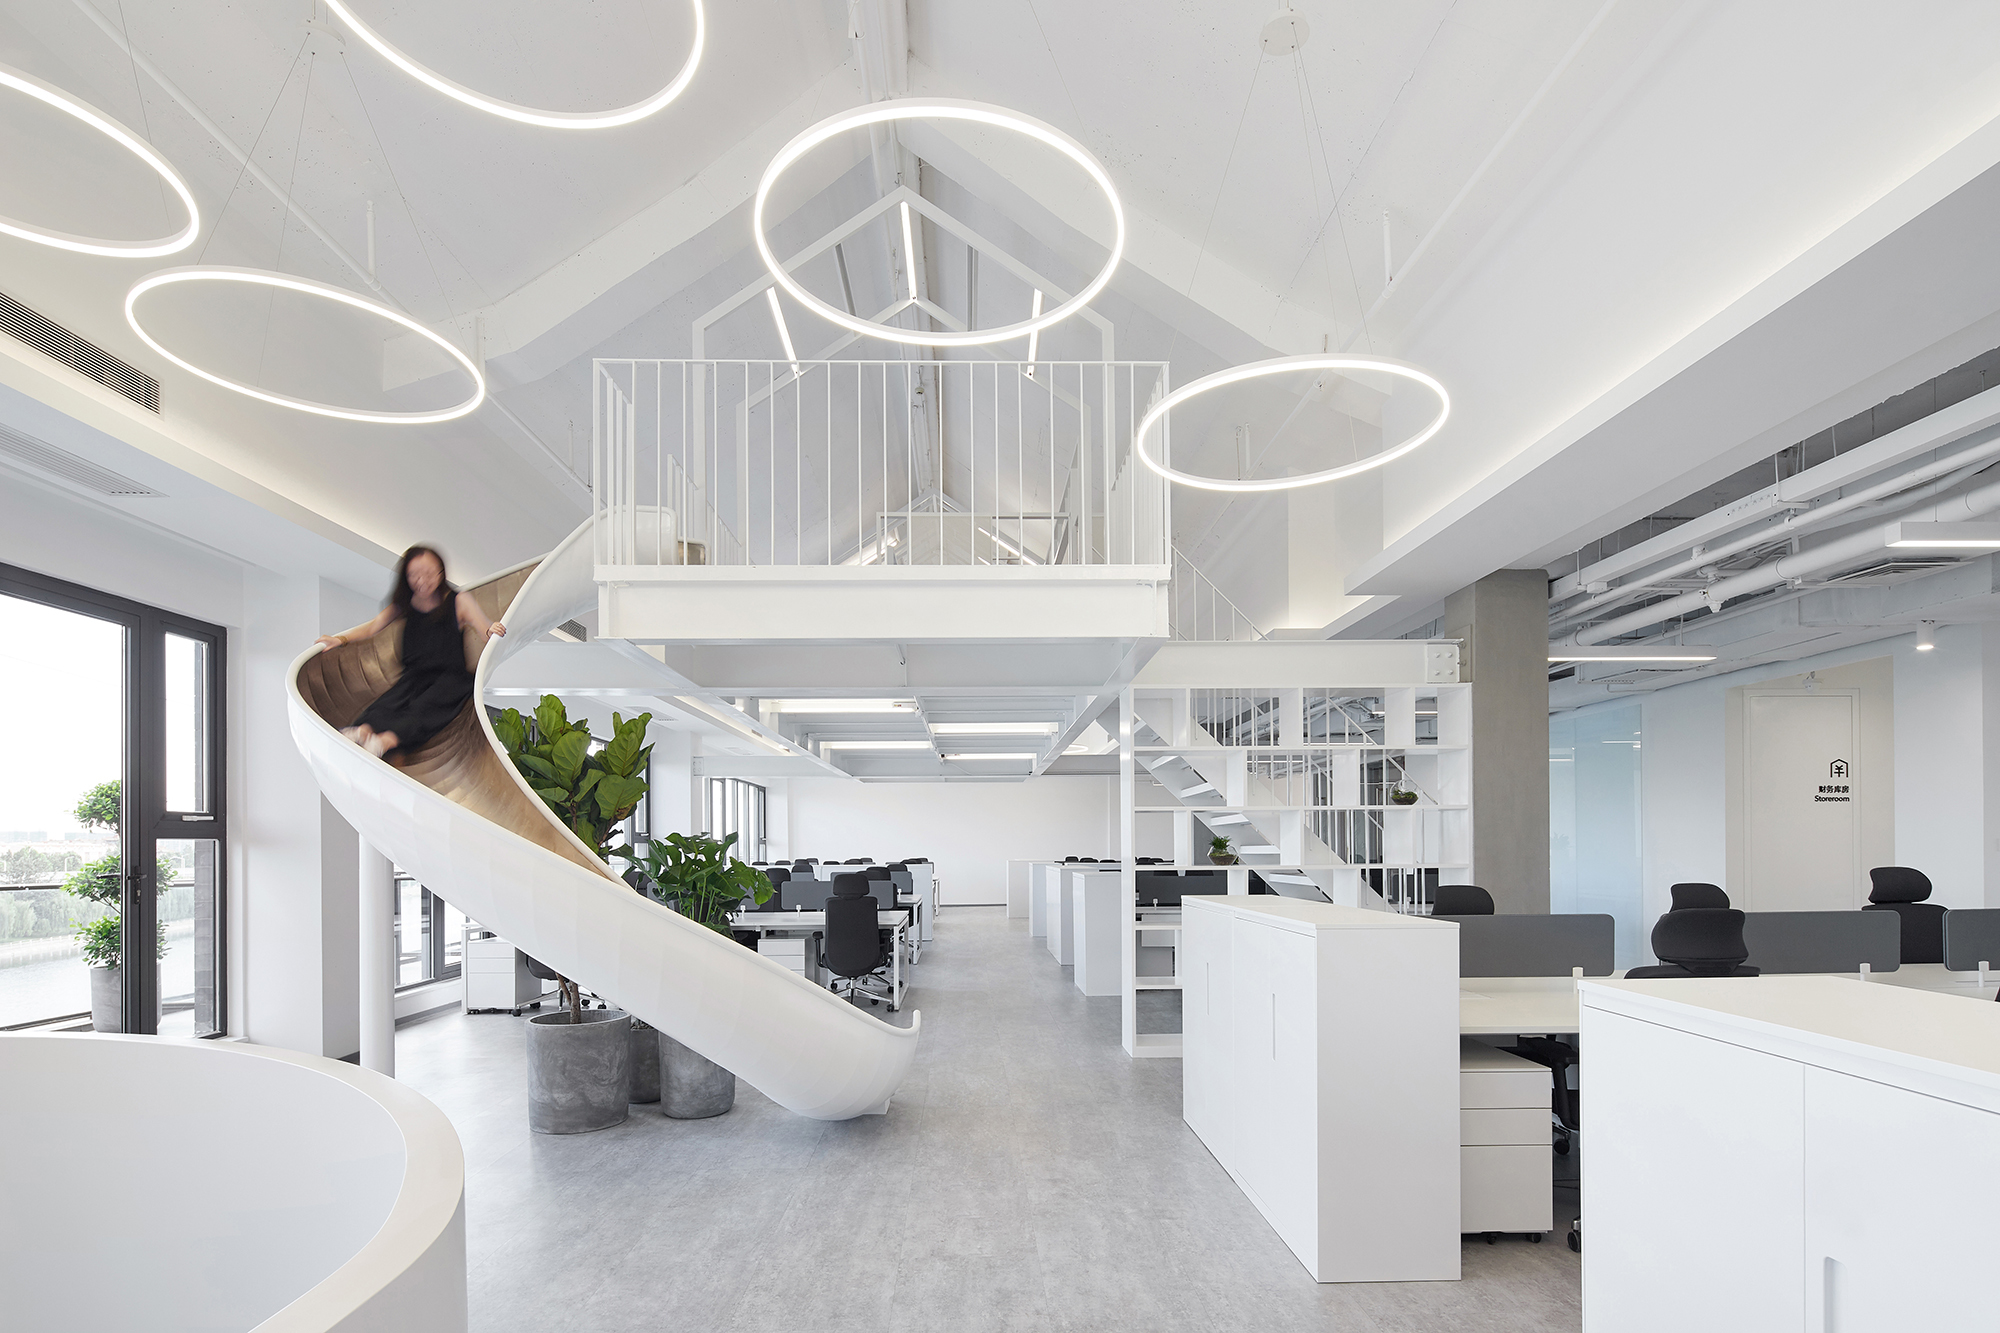 DayOne Legal & Technology Building / Ideal